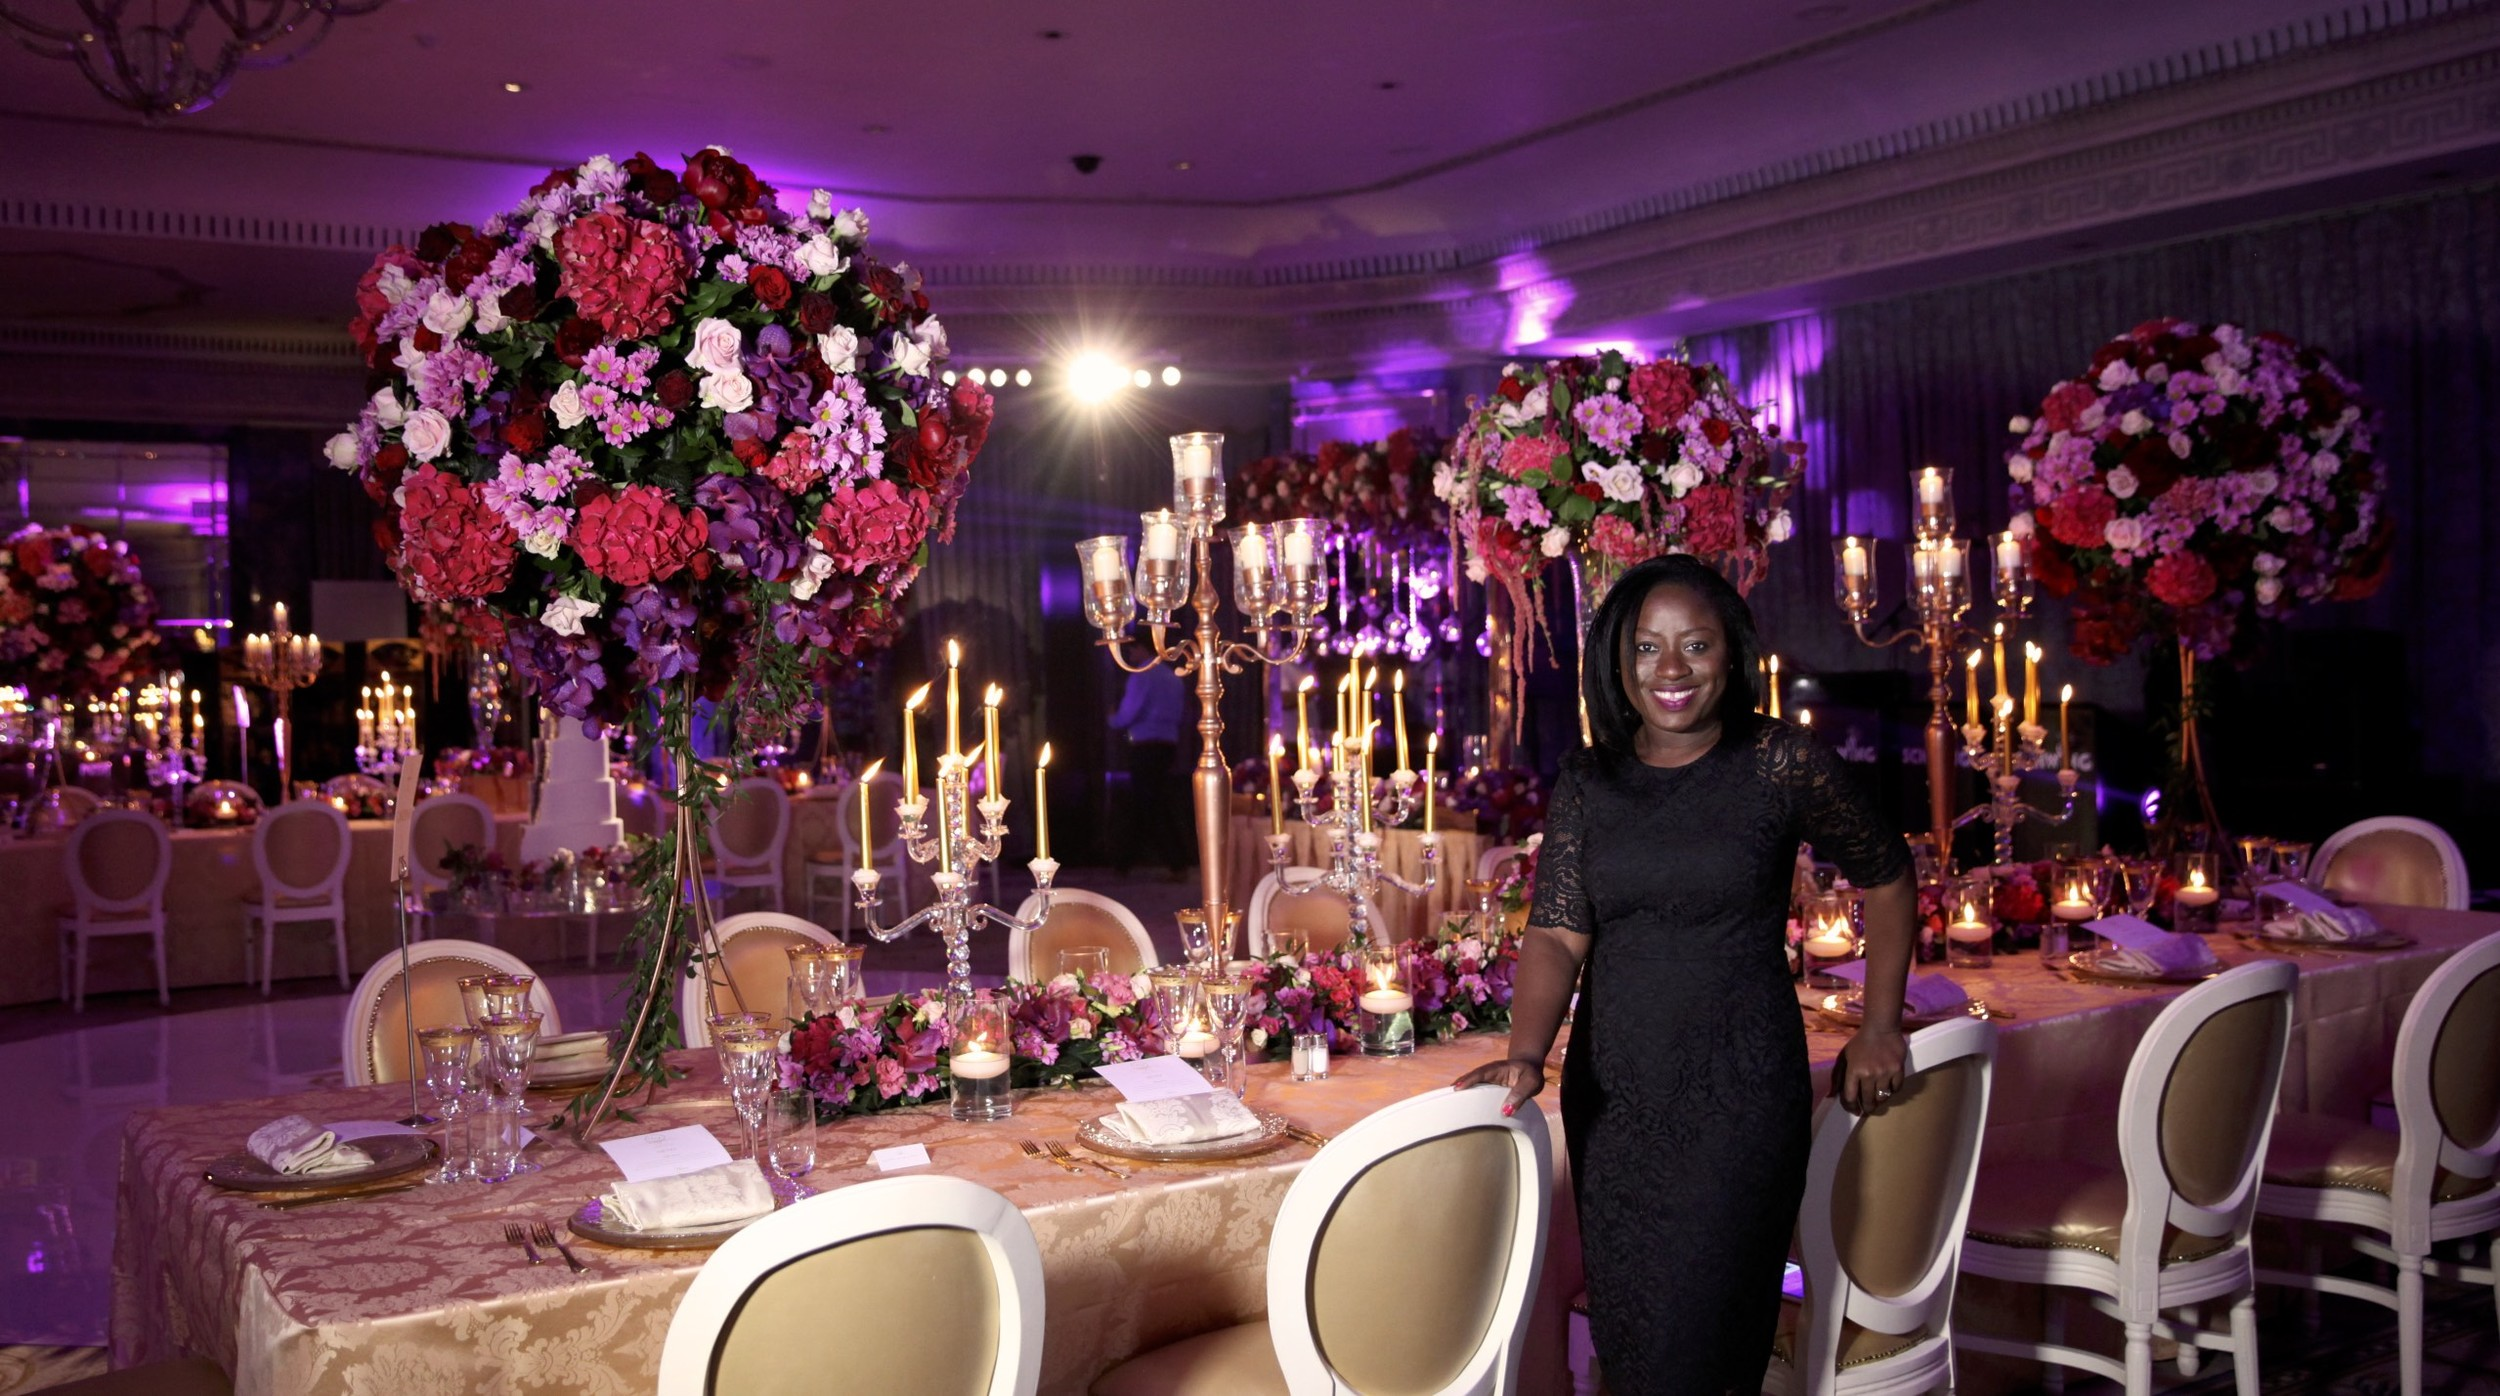 Small Business Ideas in Kenya - Become a Wedding Planner